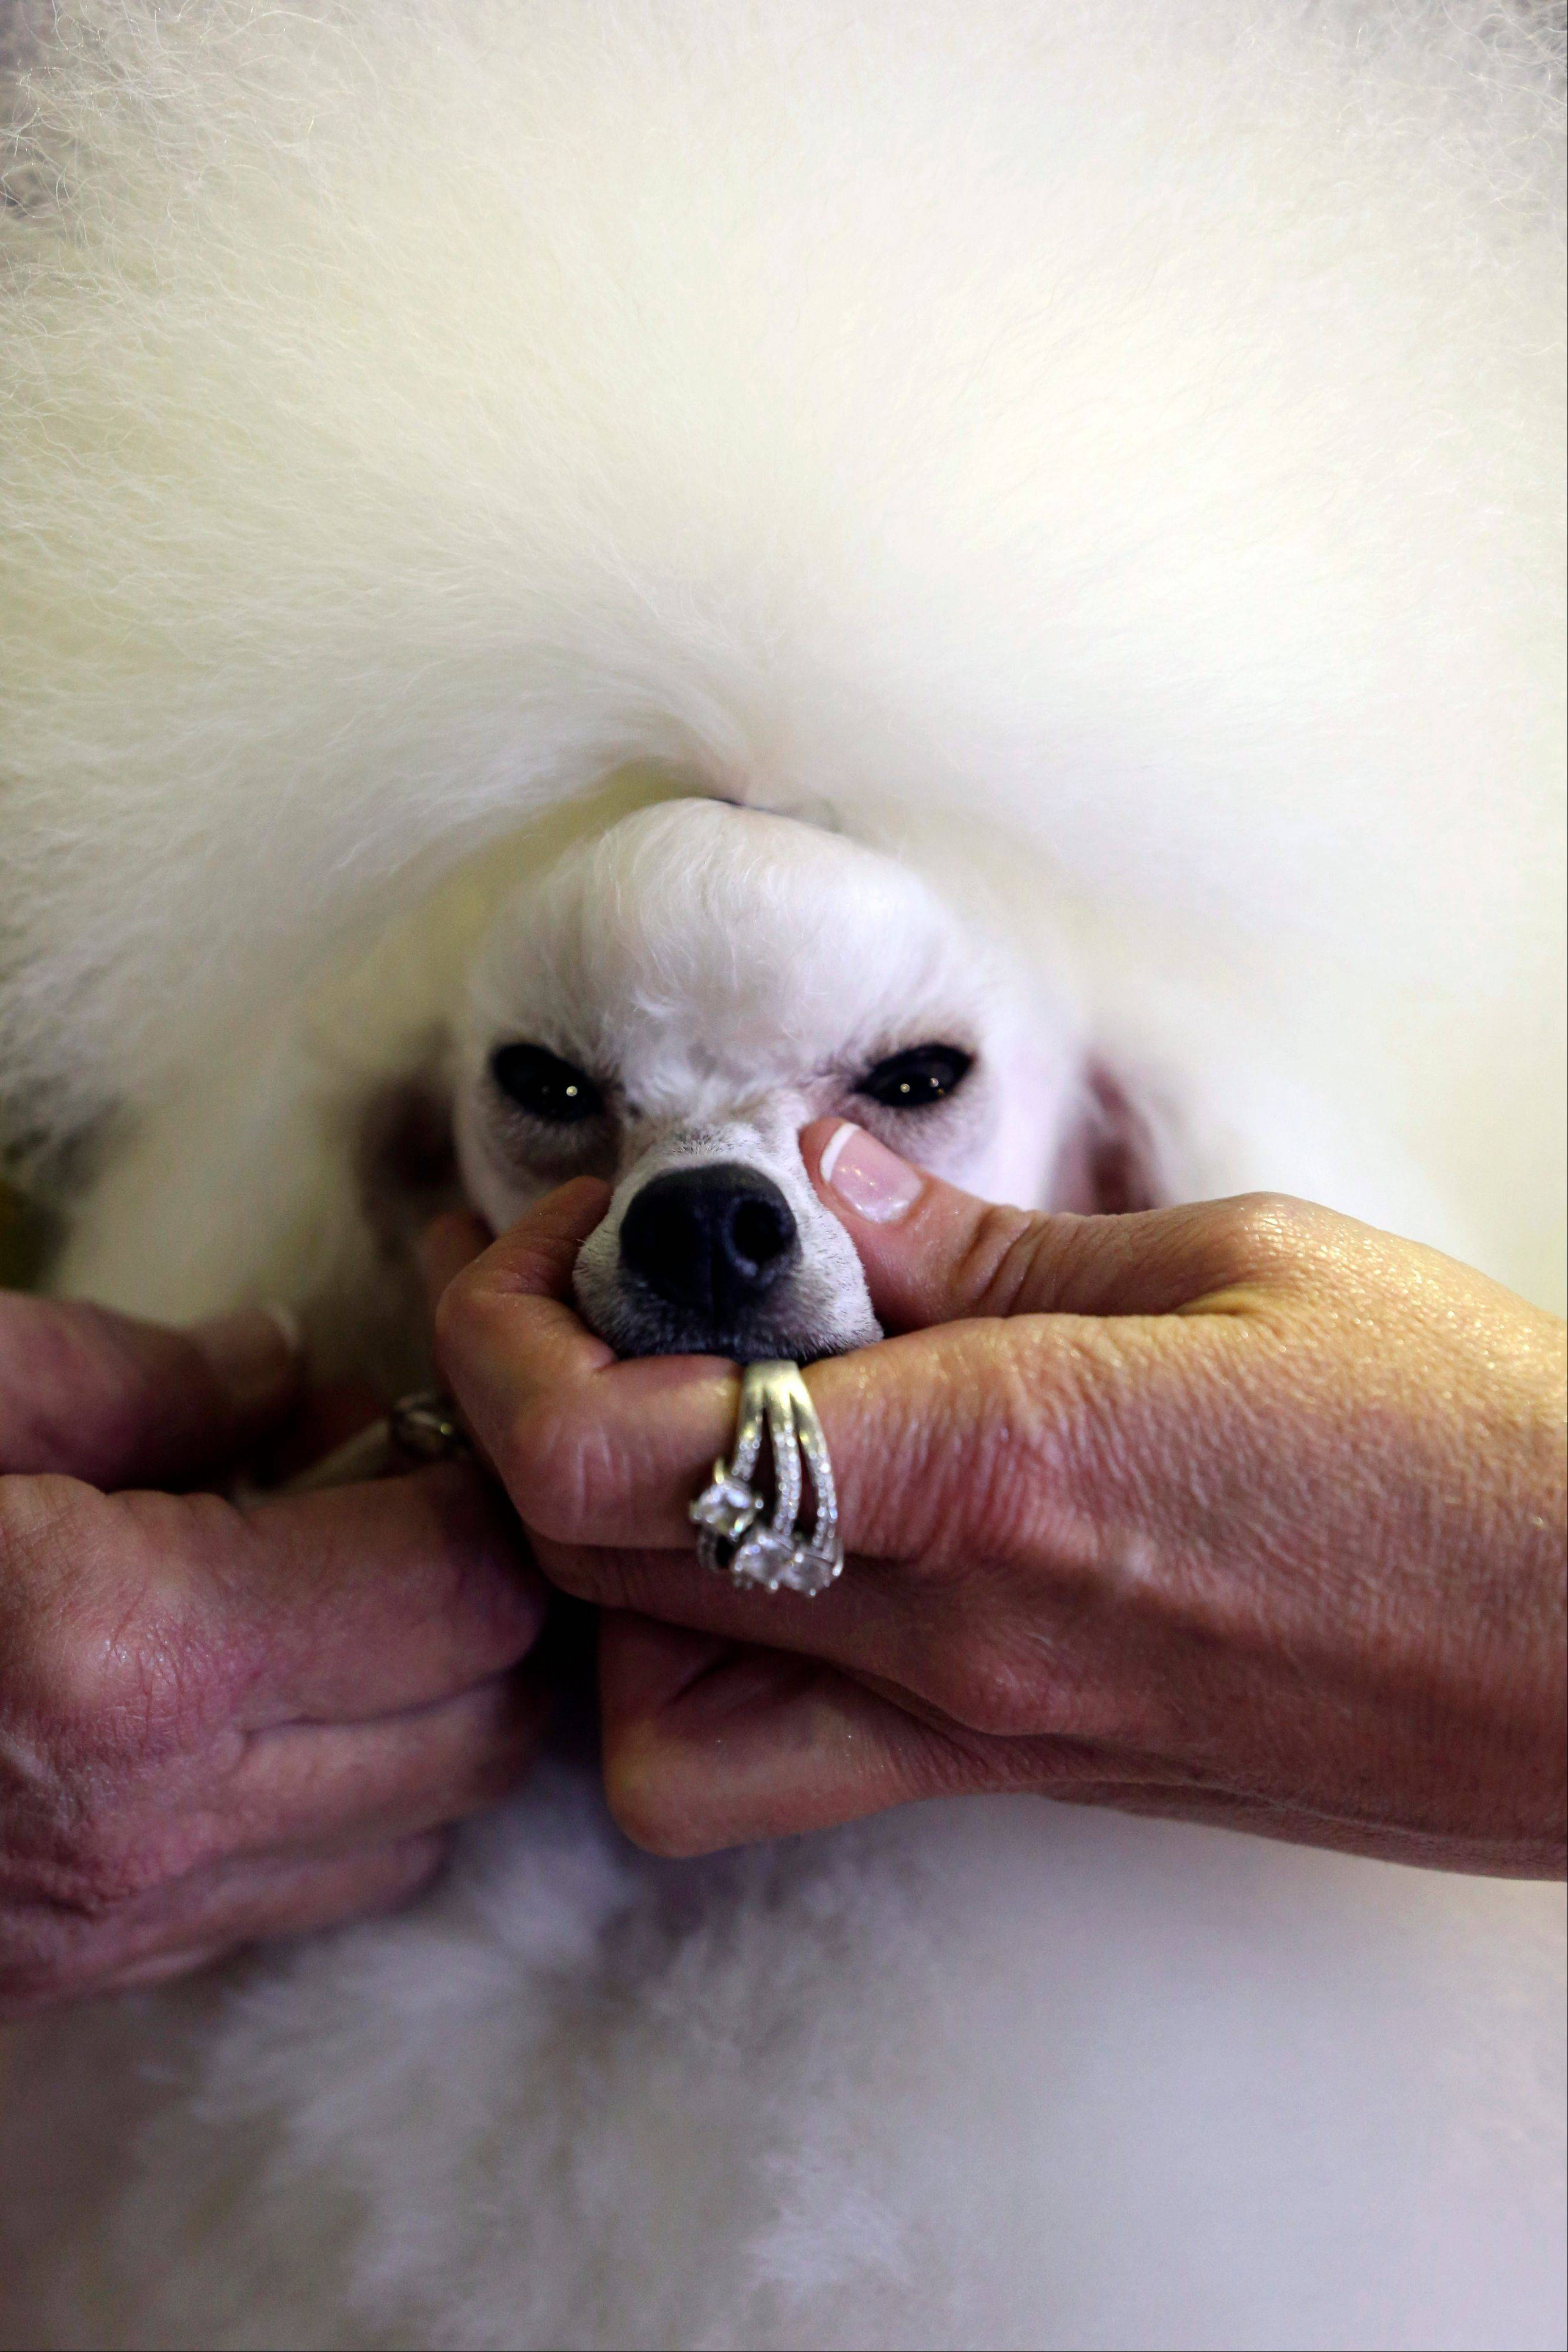 Images: 137th Westminster Kennel Club dog show